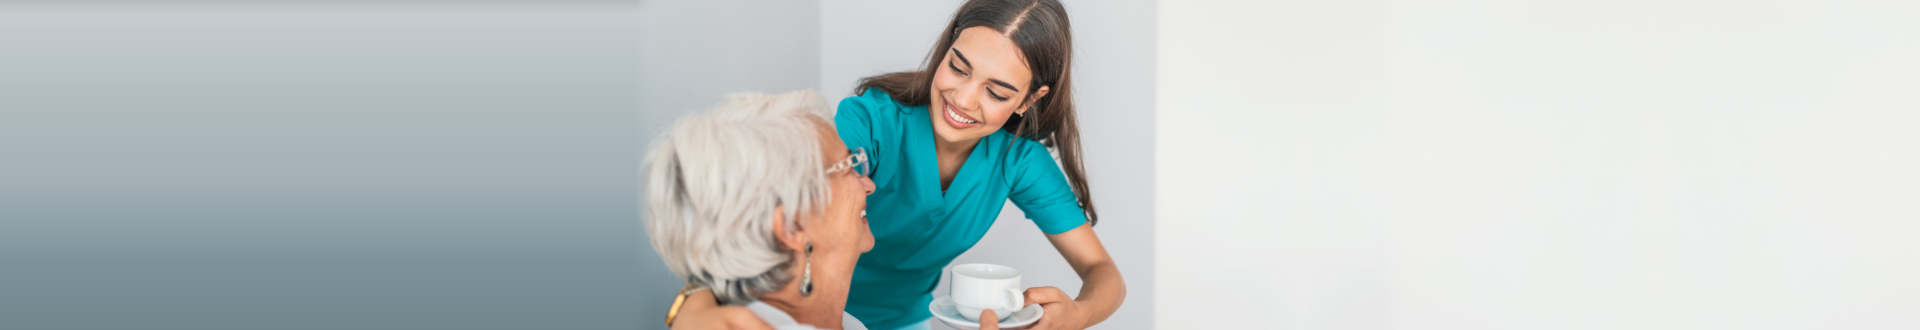 nurse giving cup of coffee to senior woman